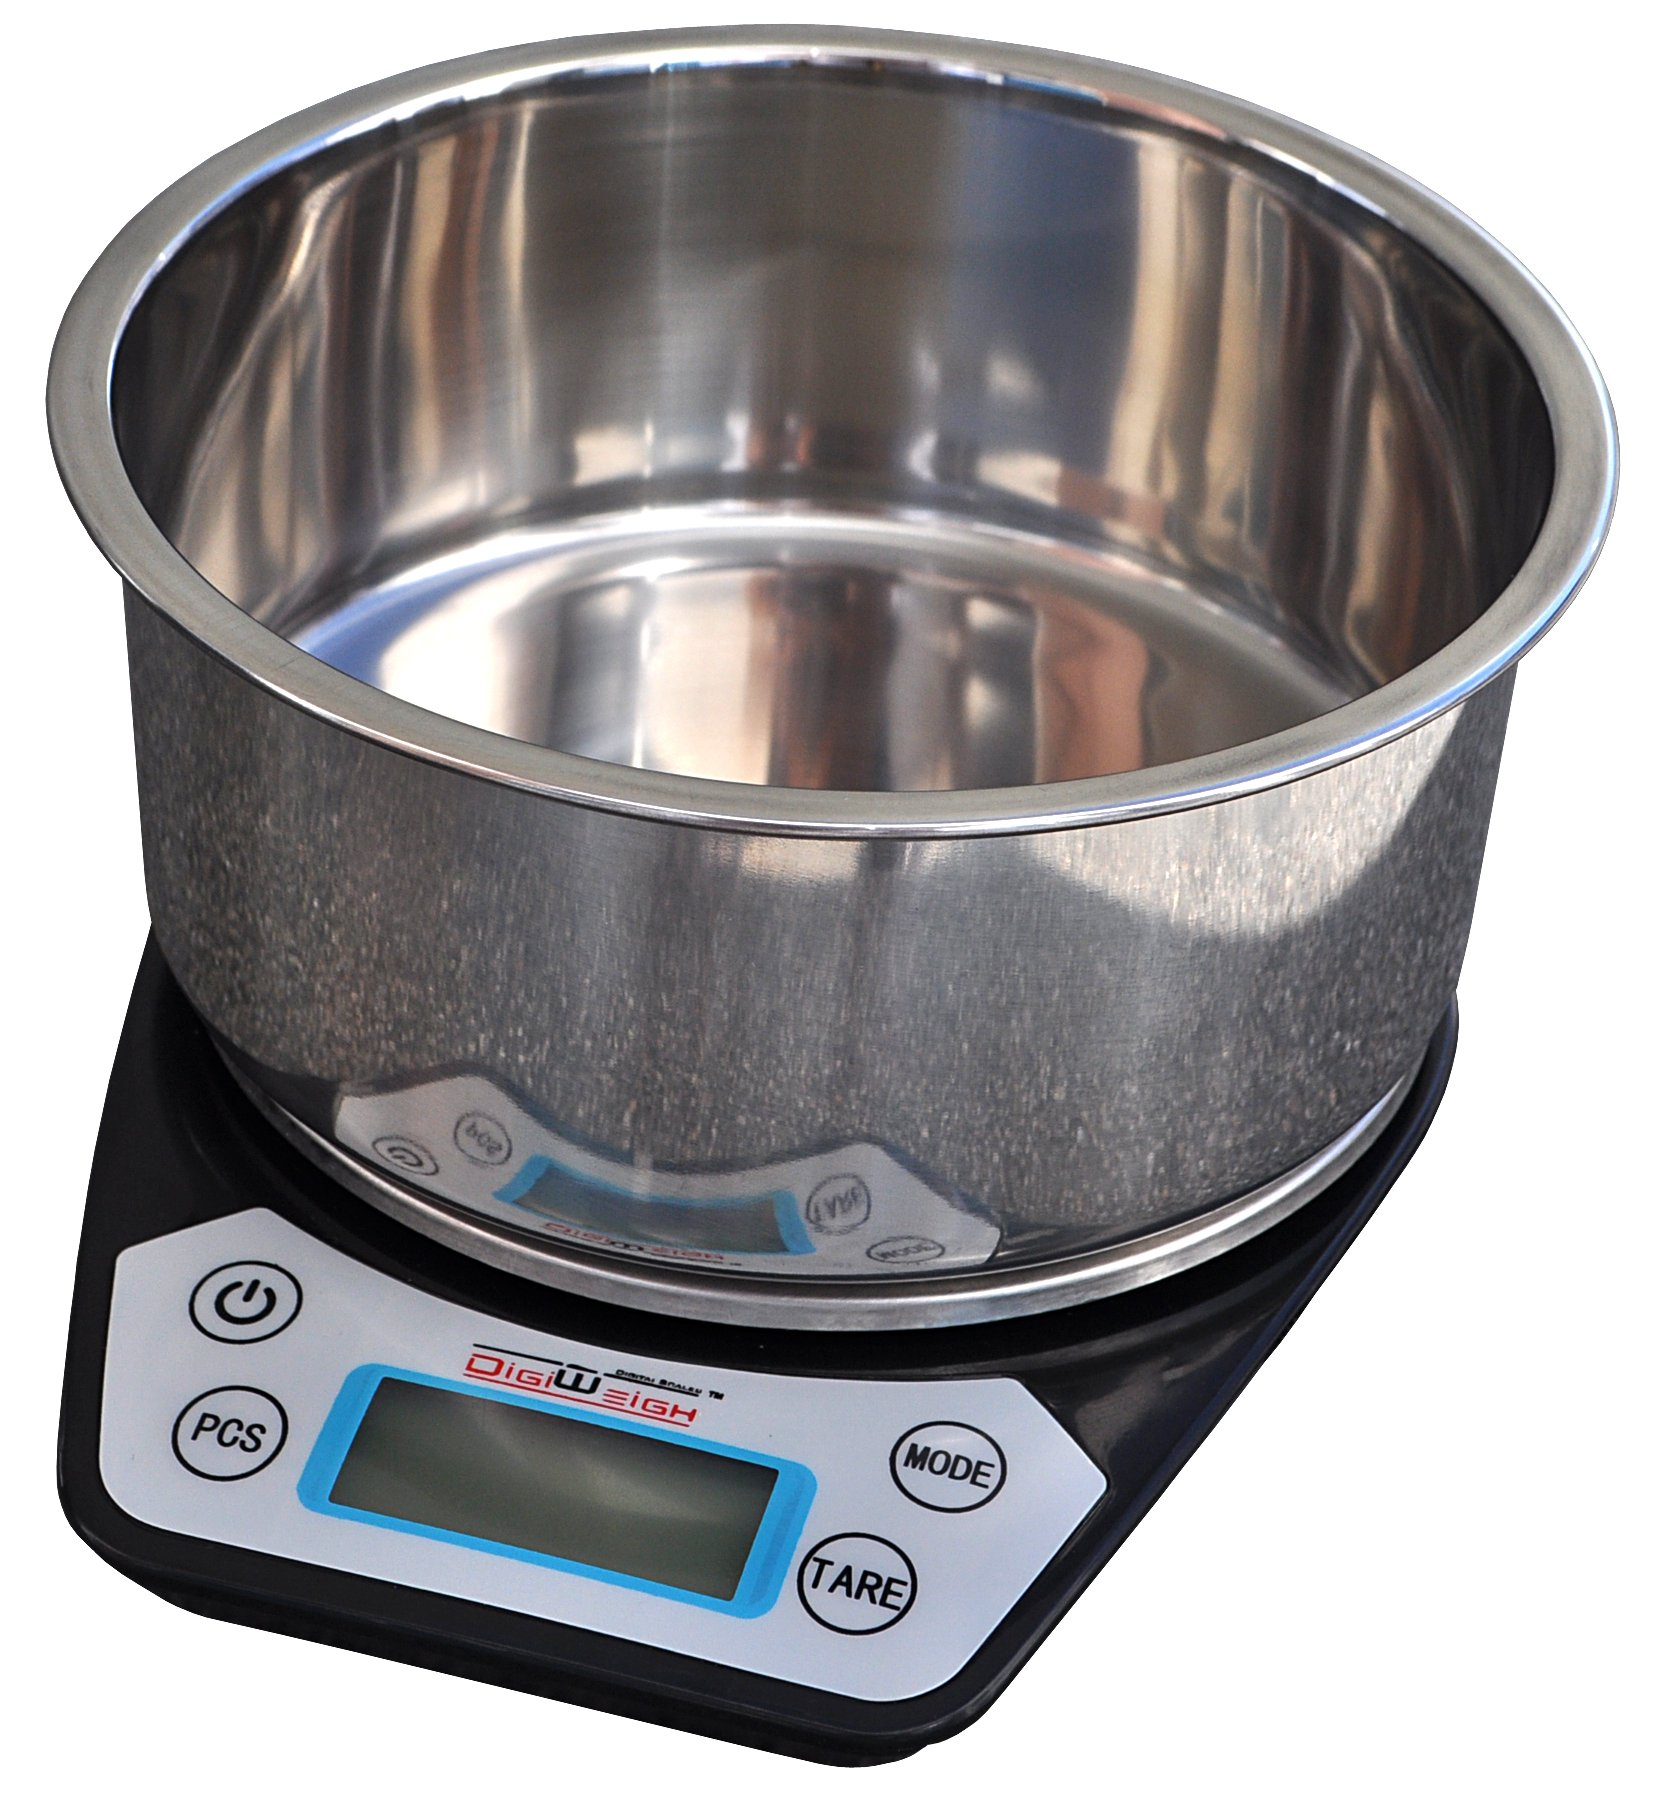 DIGIWEIGH Stainless Bowl with 0.01G Accuracy Weighing Scale (DW-86) by DigiWeigh